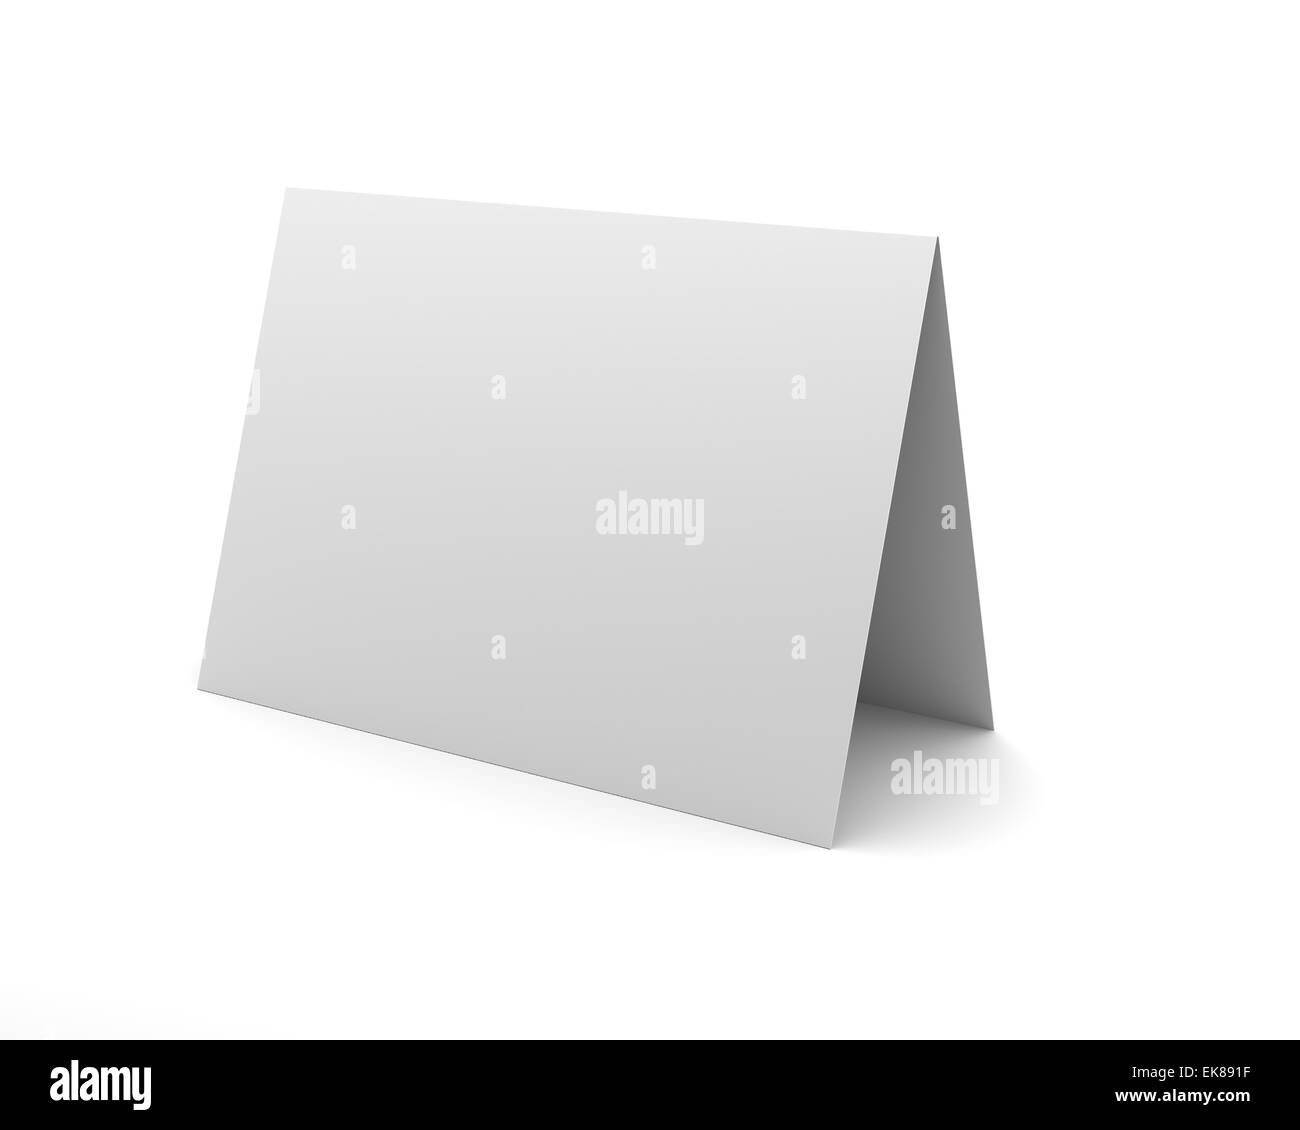 Blank White Desk Display on the White Background - Stock Image